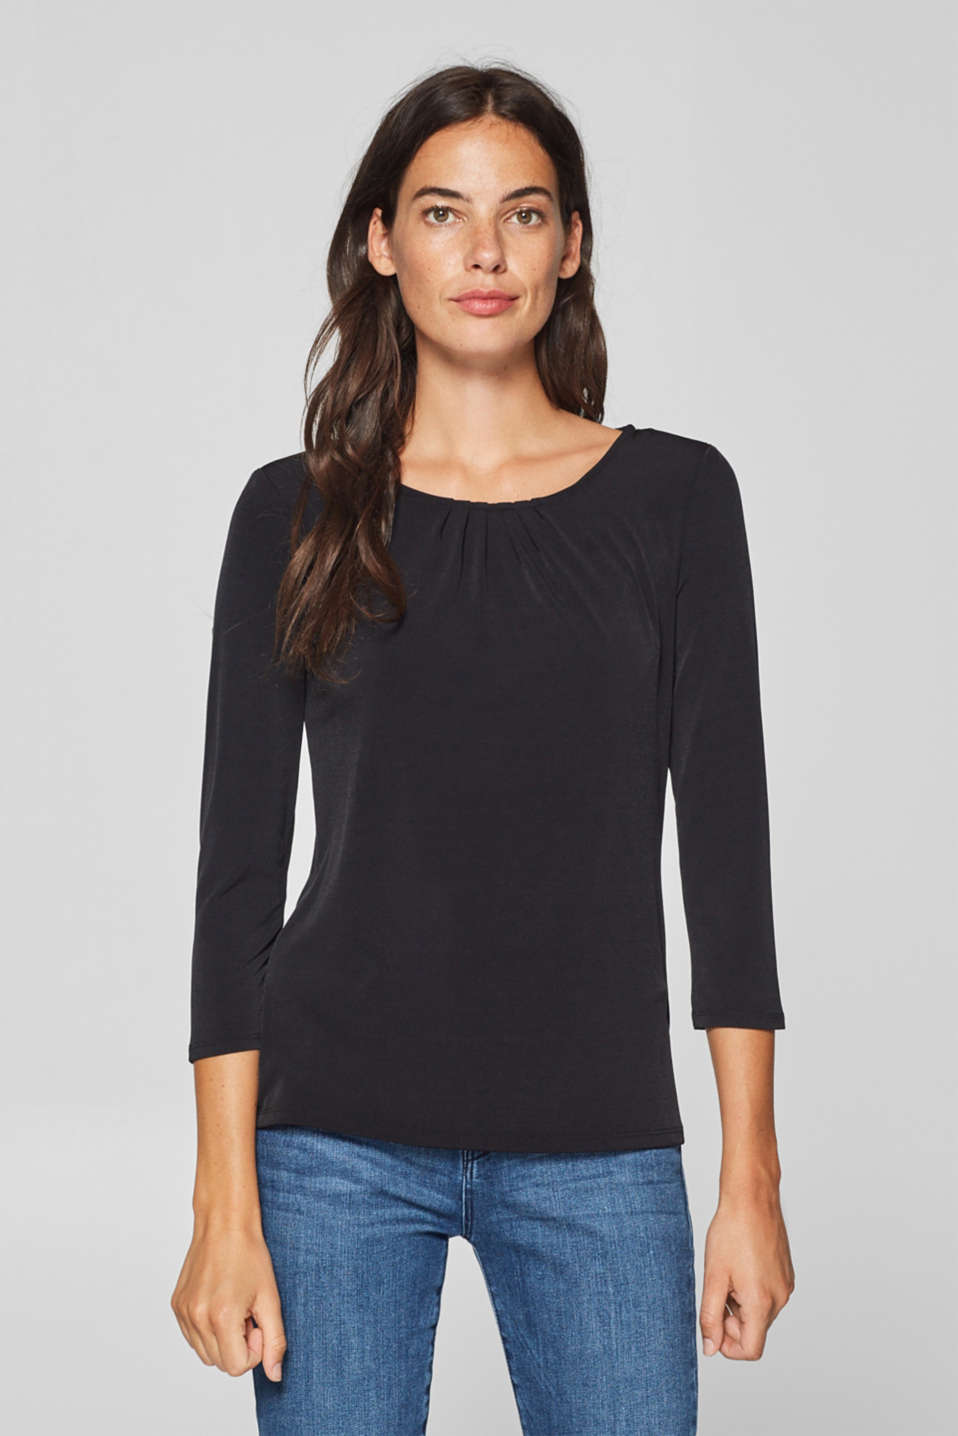 Esprit - Stretch tee with a pleated neckline